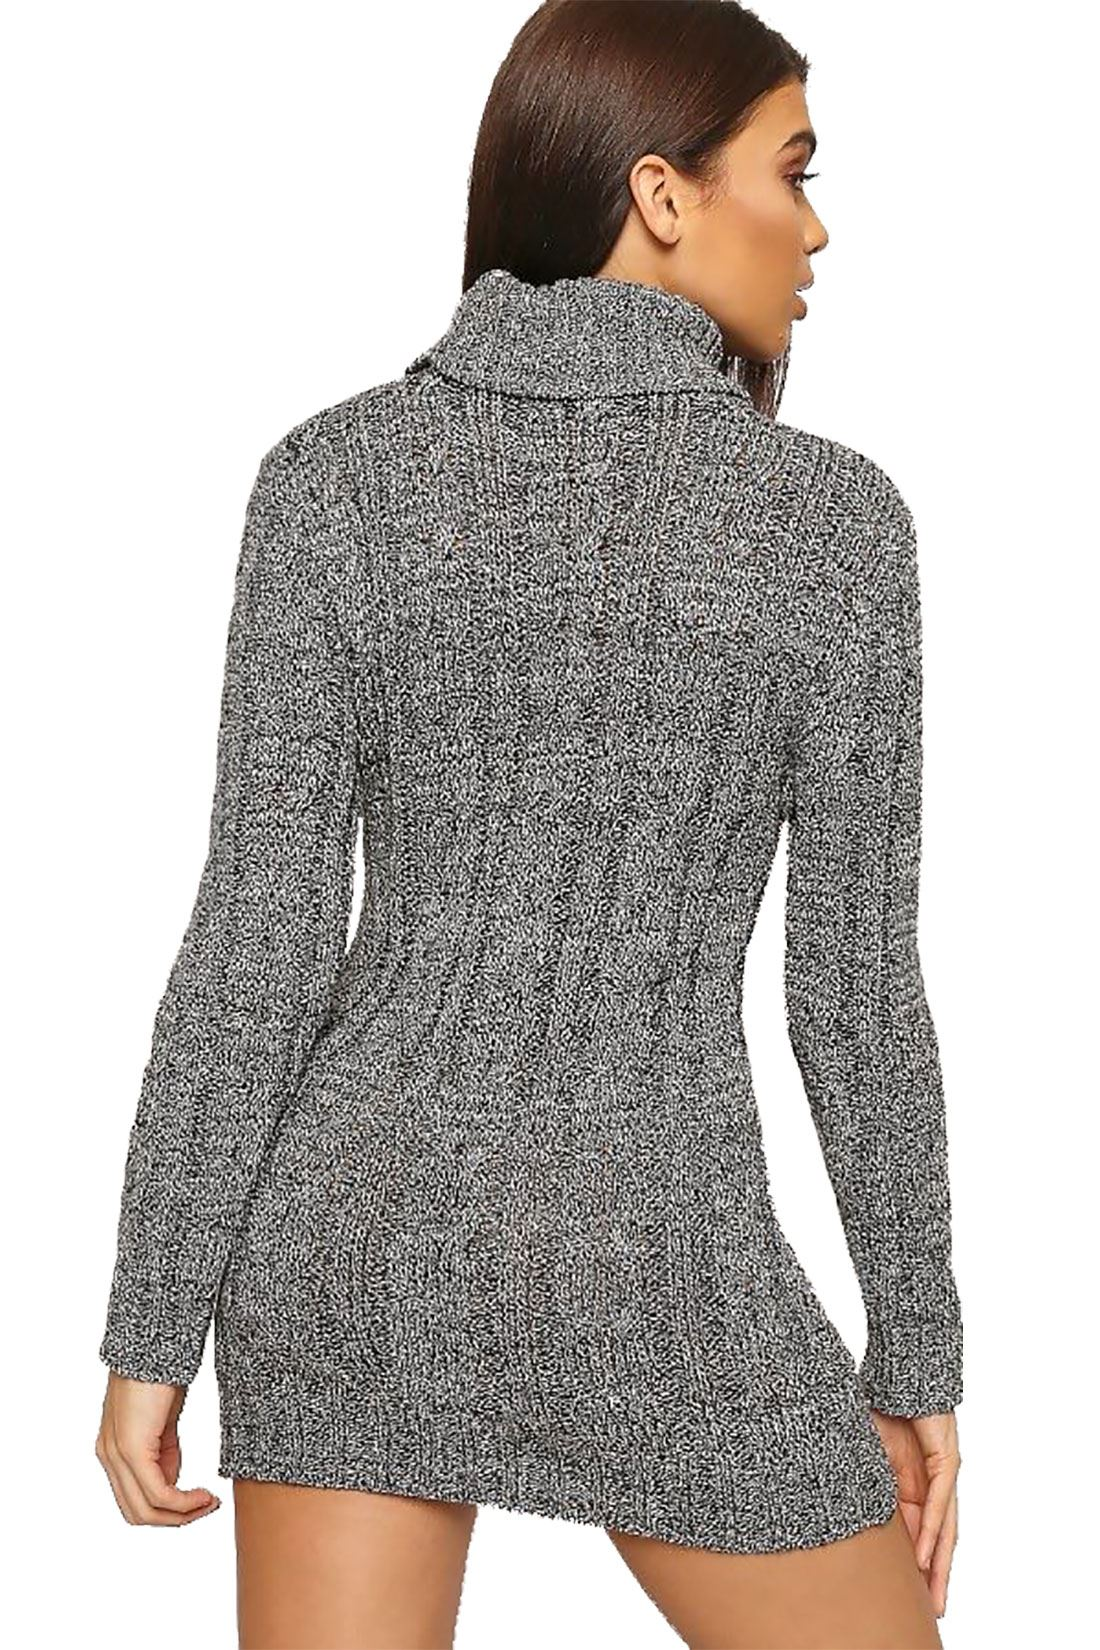 2f1b016d2b7 Details about Womens Cable Knitted Polo Roll Neck Jumper Ladies Long Sleeve  Stretch Dress